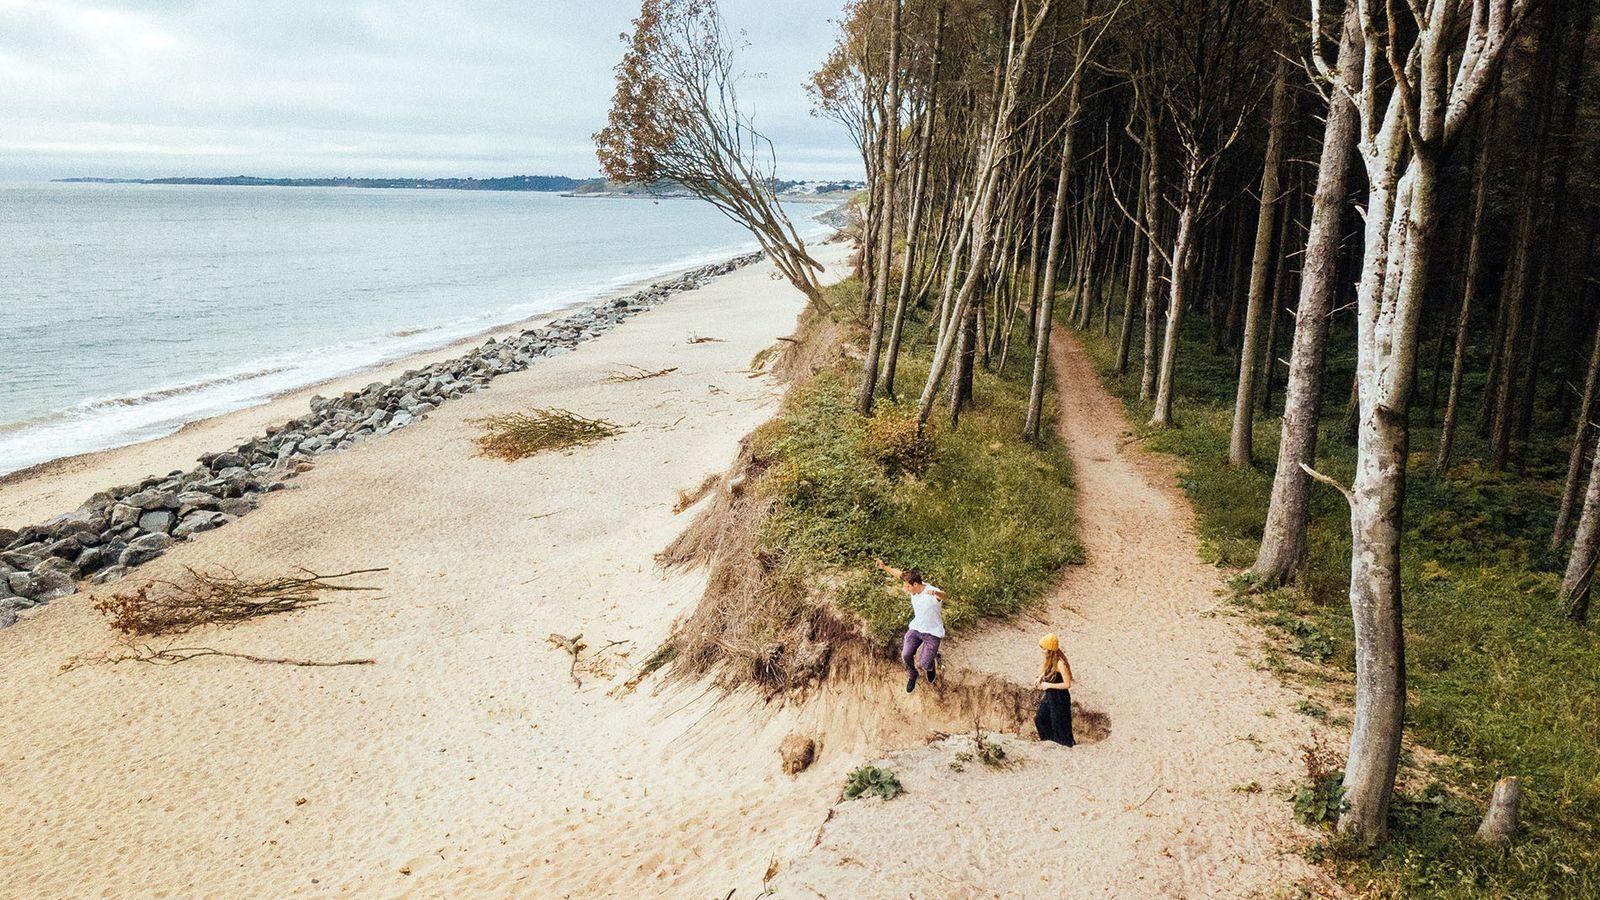 Crossing paths: Ireland and Wales unveil new walking routes